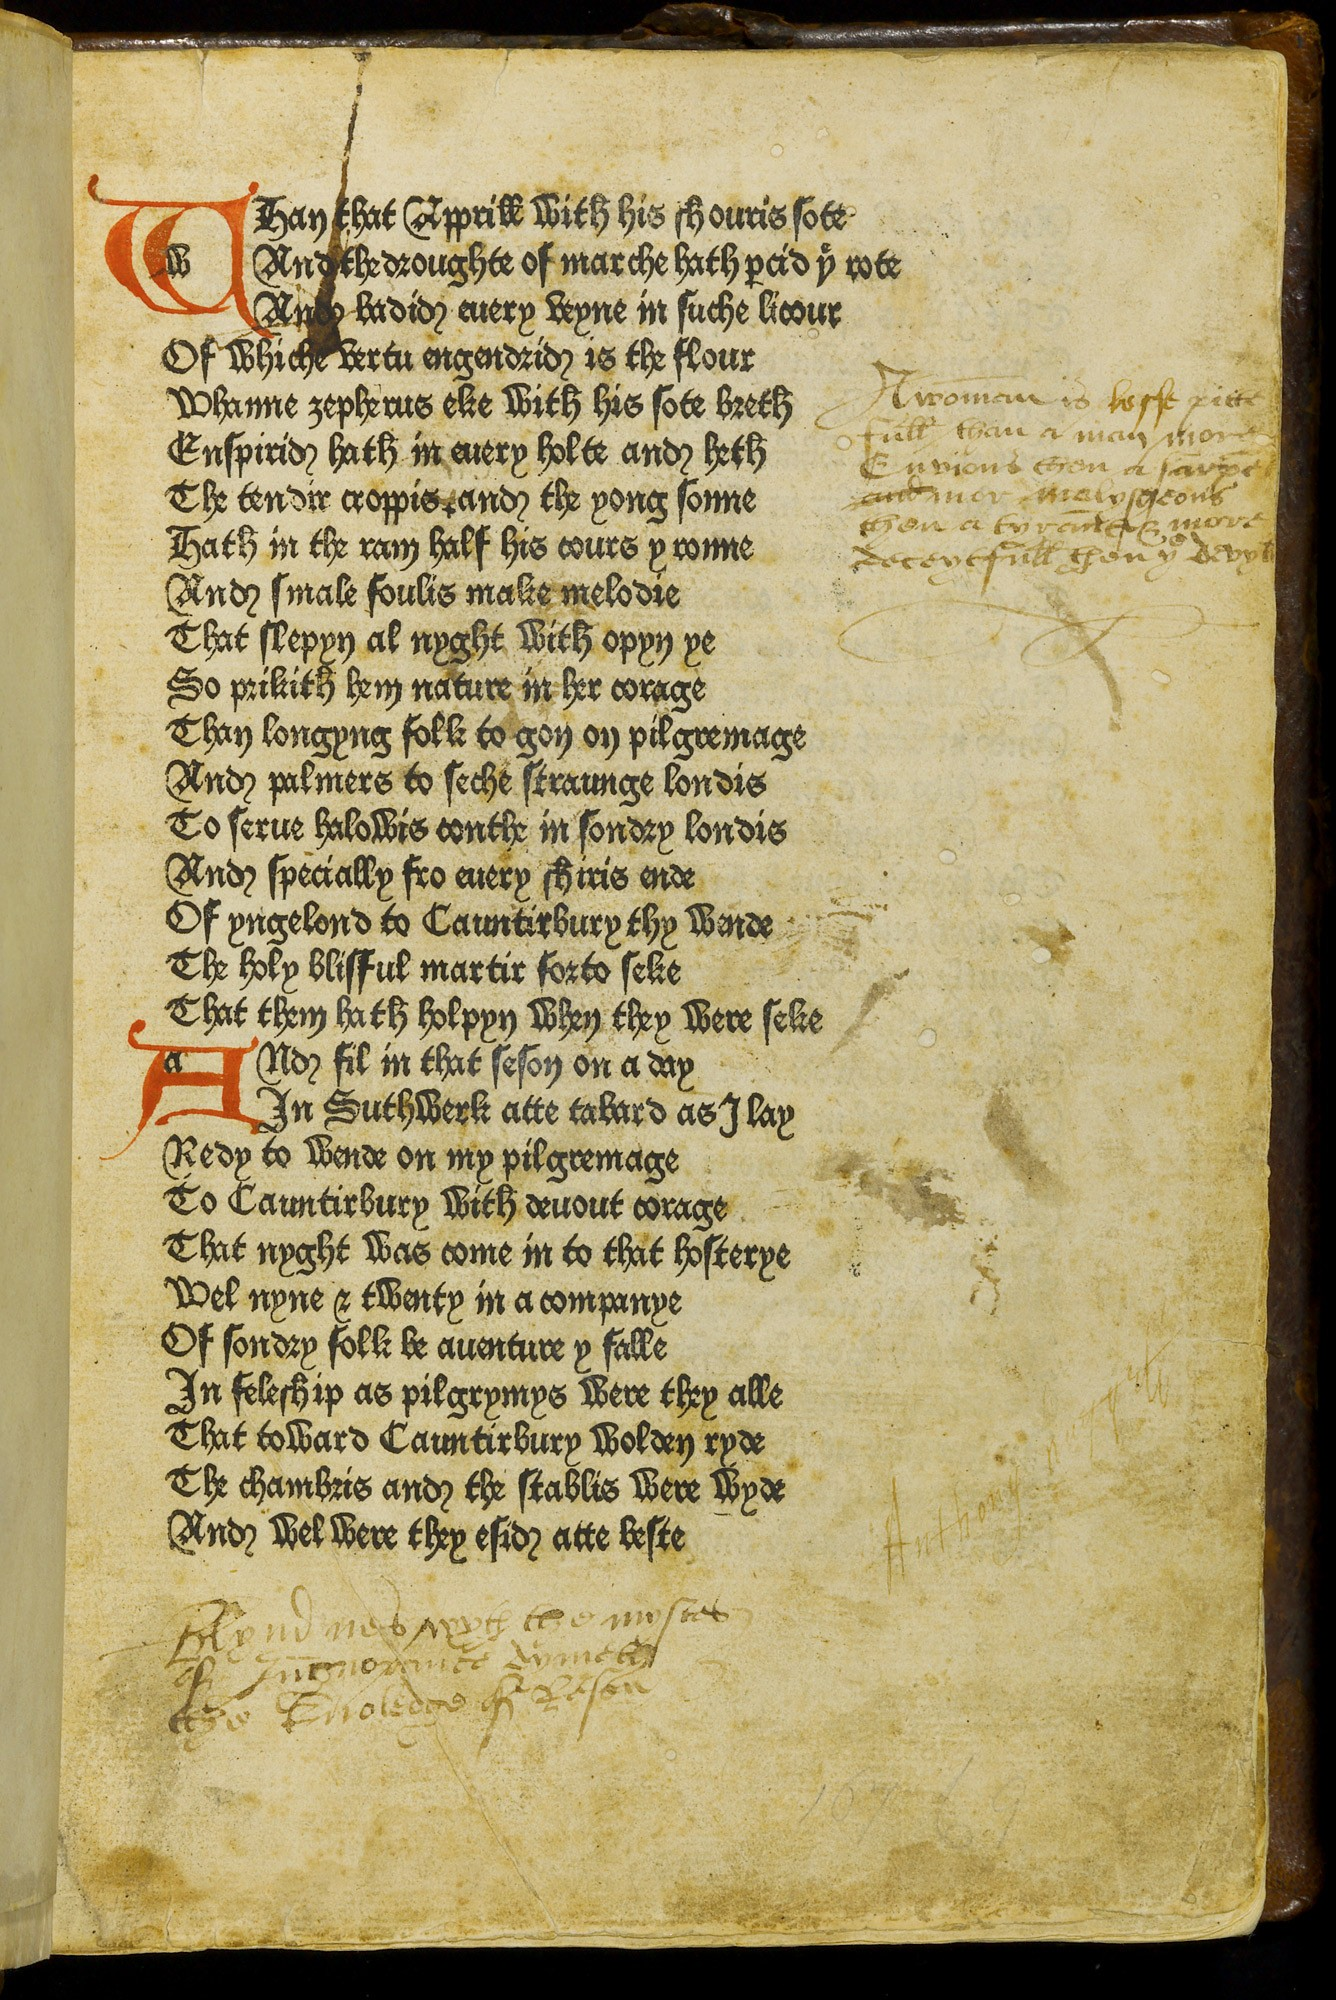 First edition of The Canterbury Tales